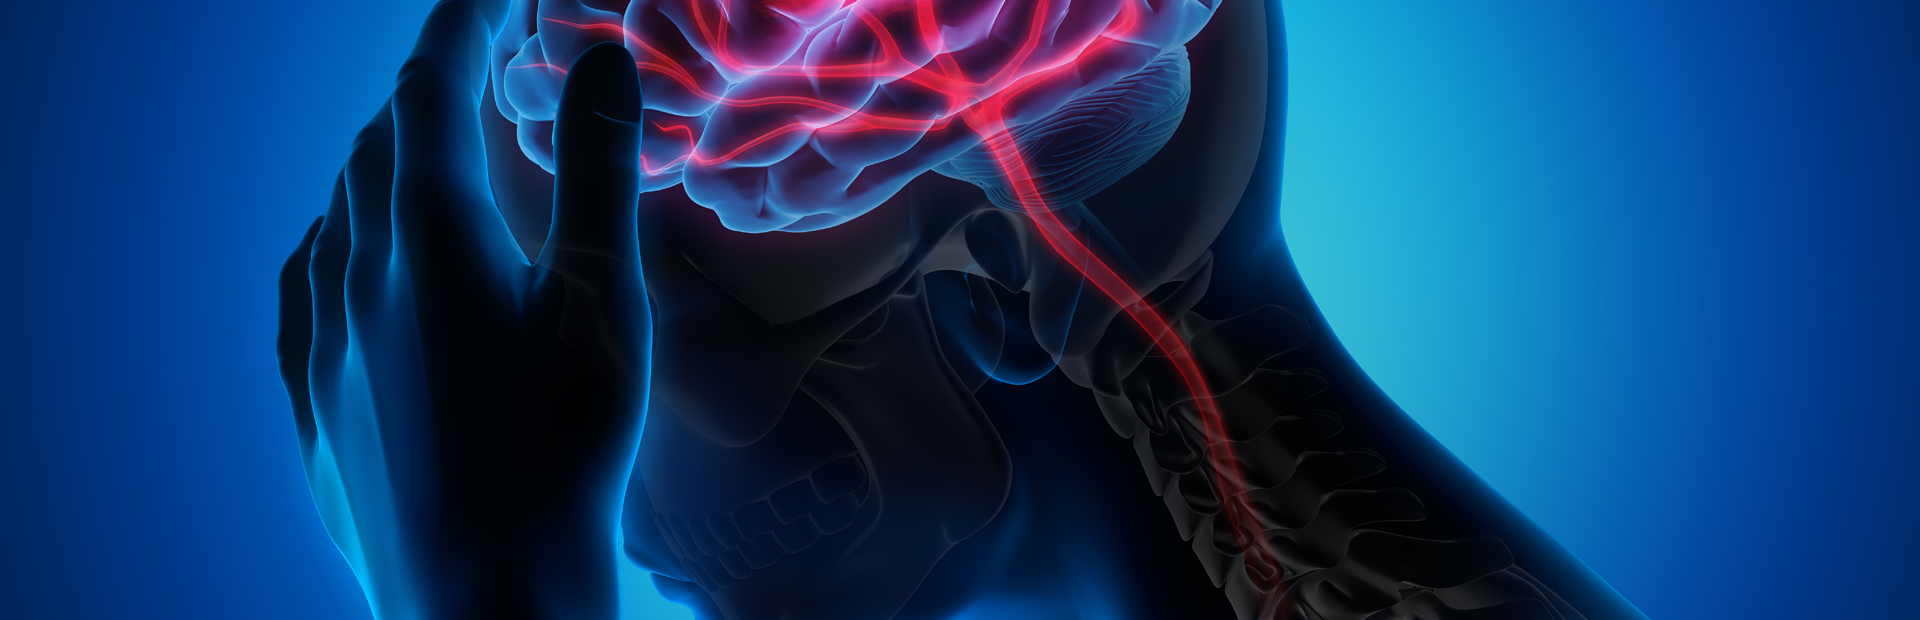 Check out our quick tips on treating a stroke with our assessments and protocols below | ACLS